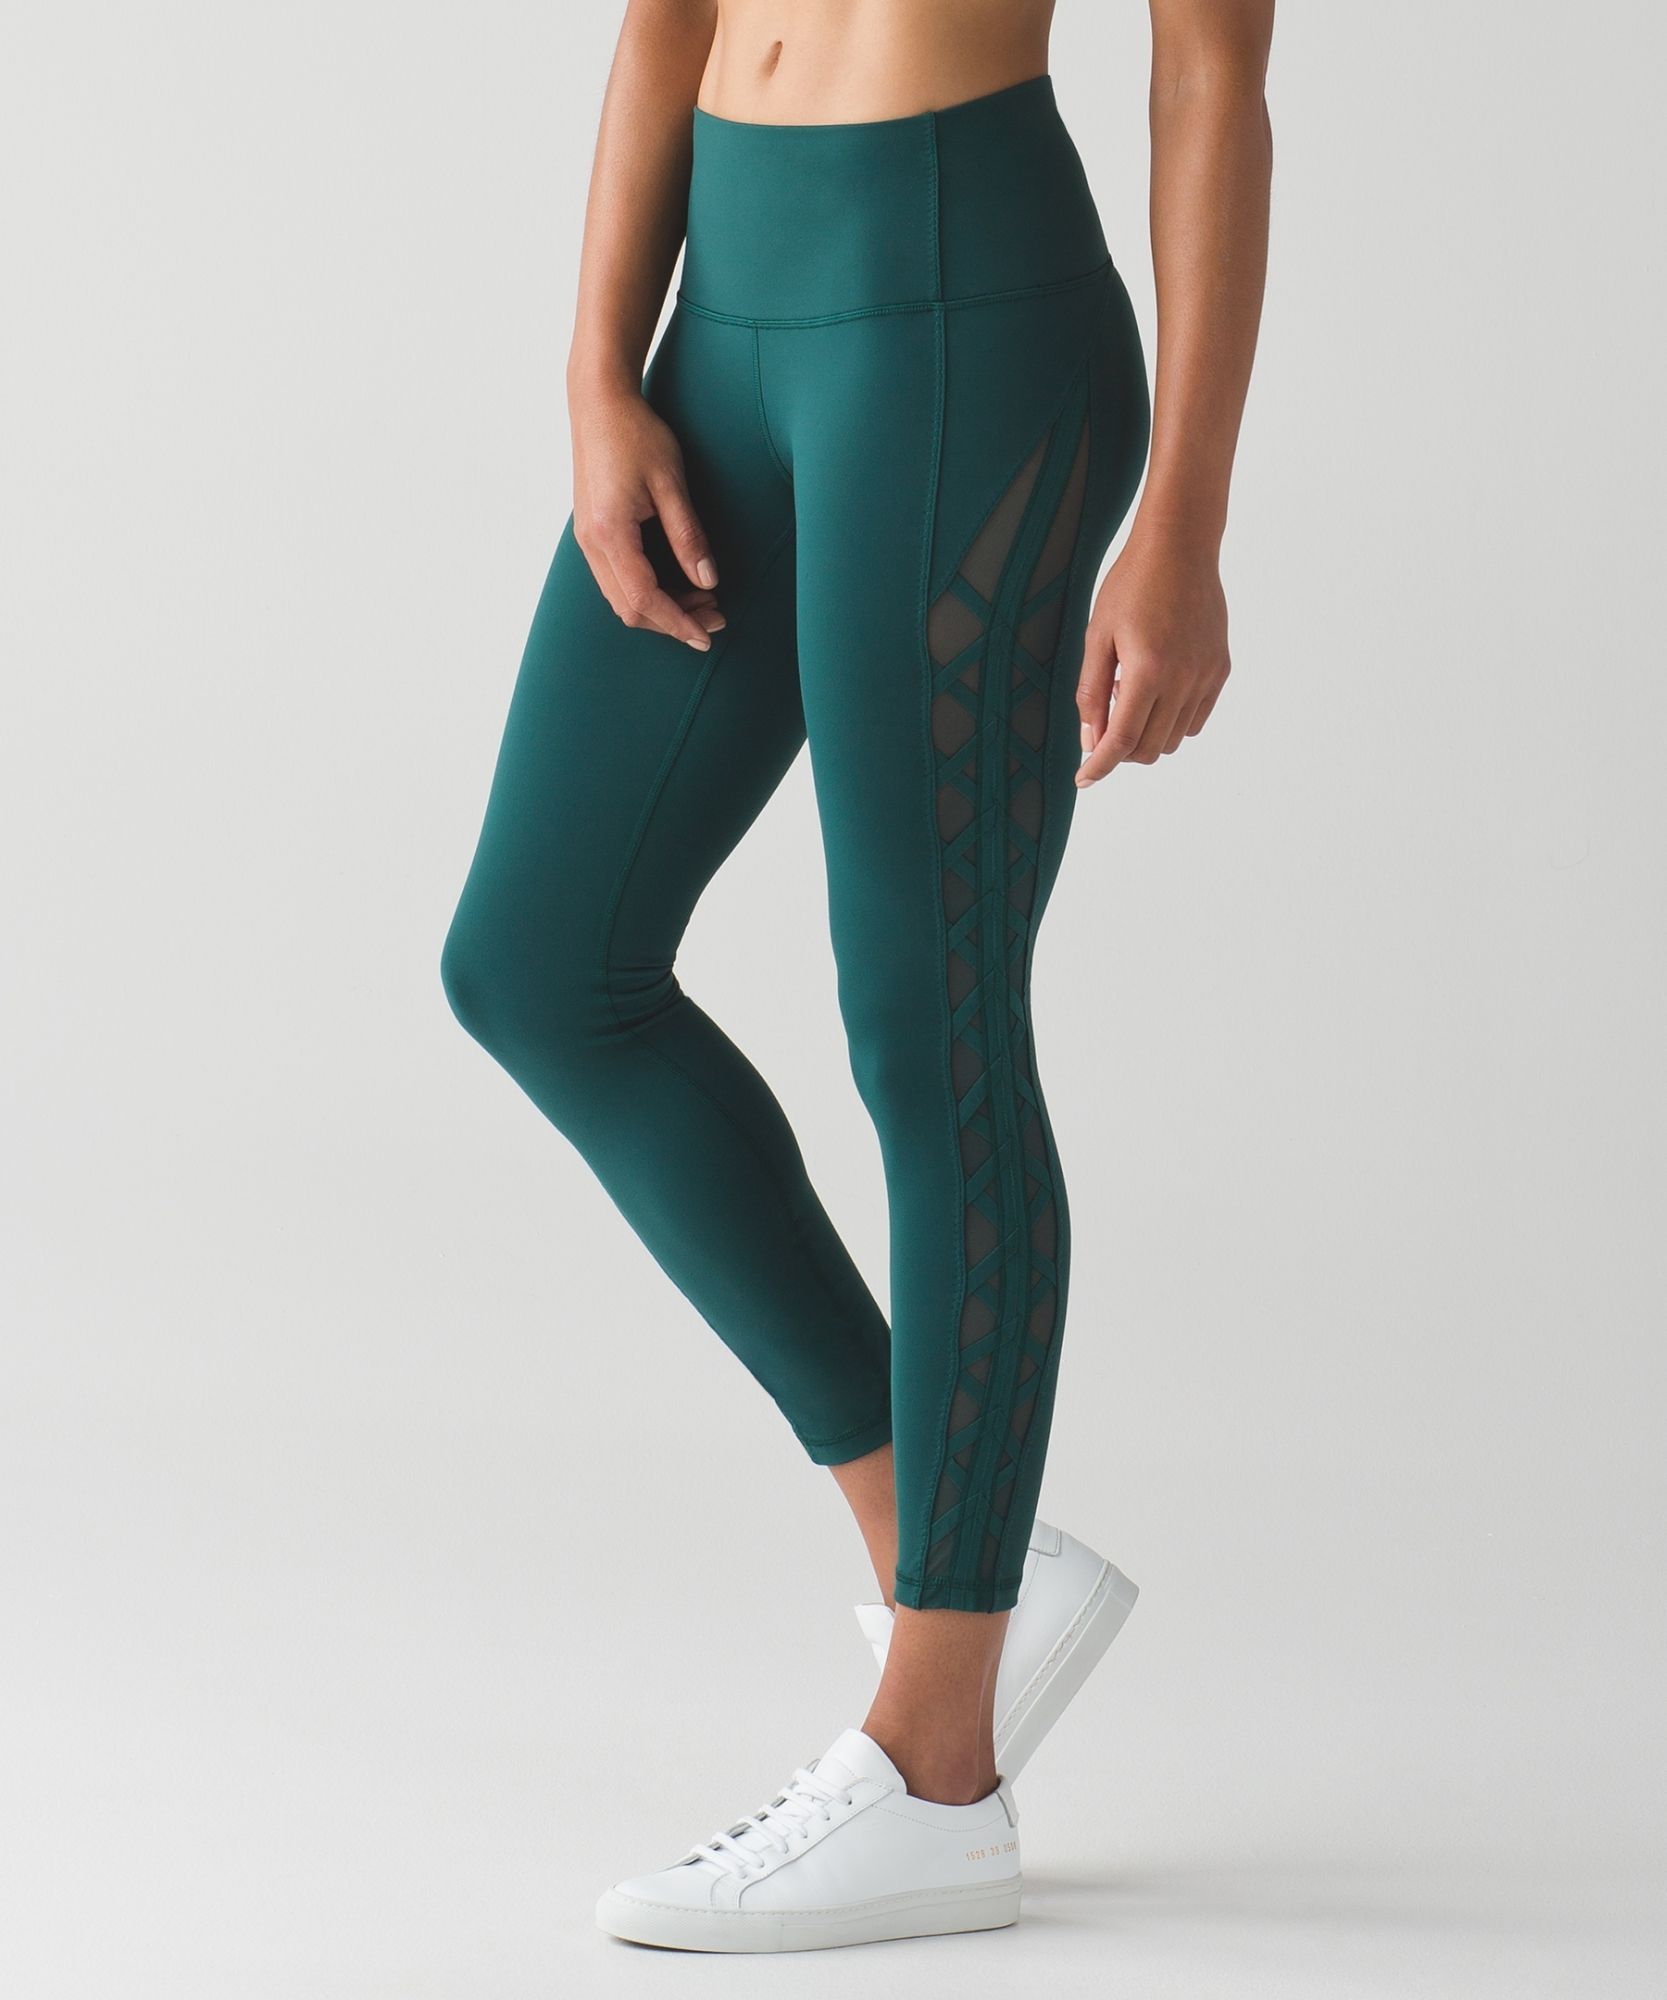 These high-rise, 7/8-length pants were designed to take you from ...